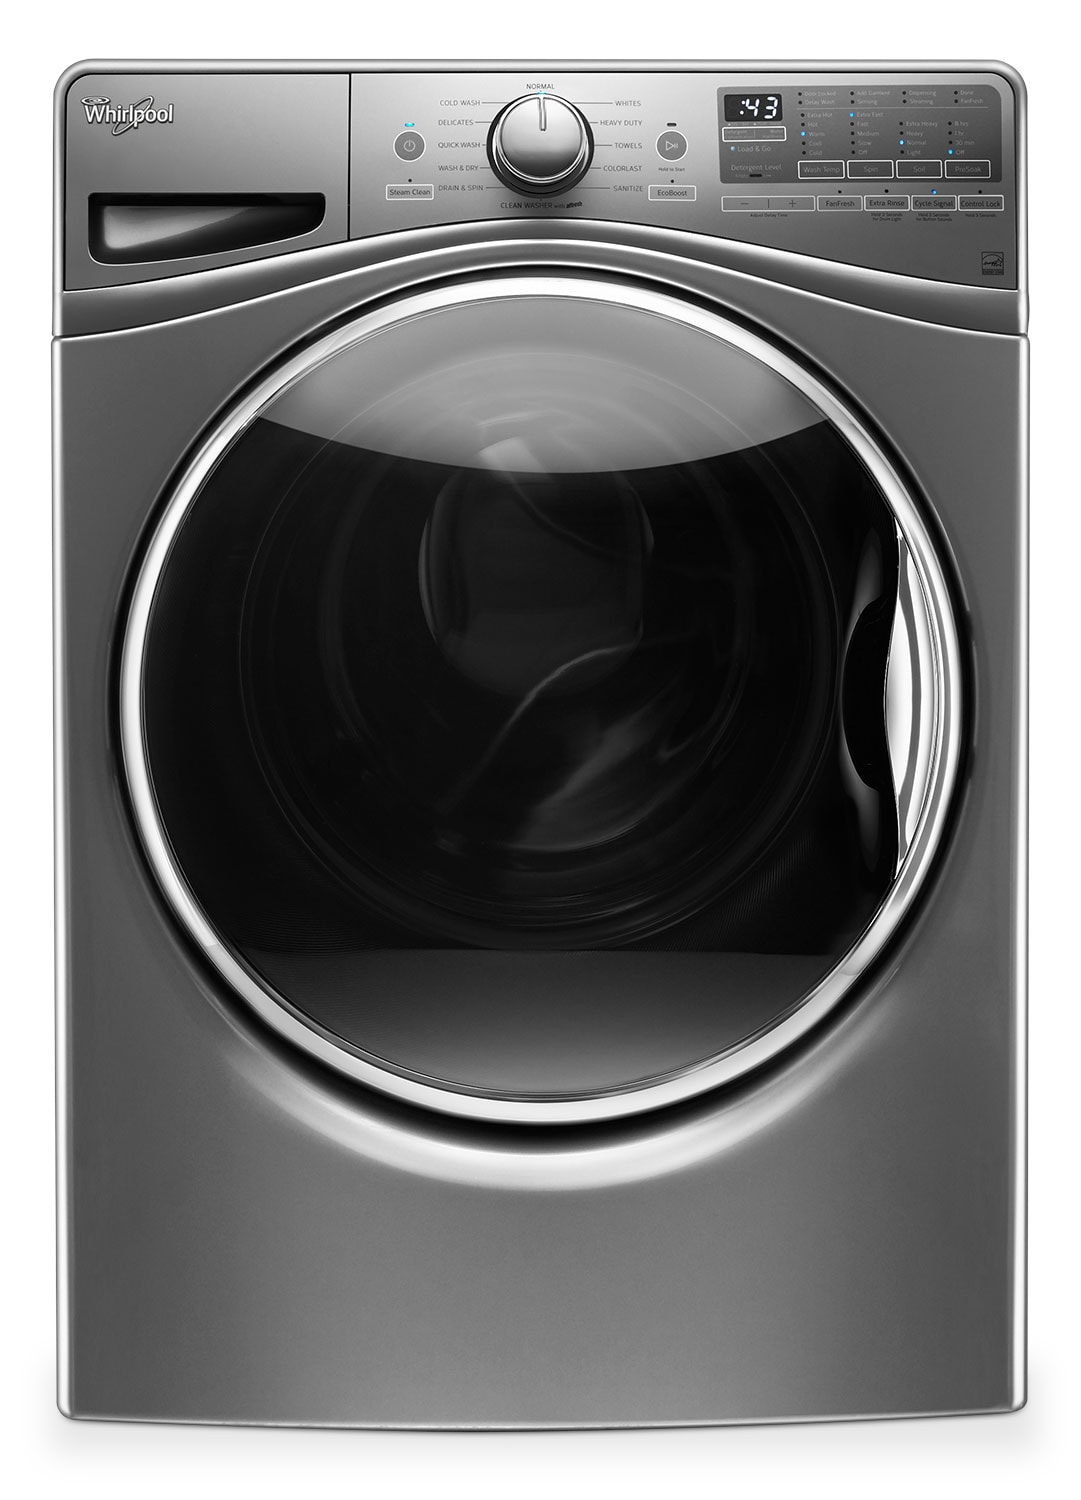 Whirlpool Chrome Shadow Front-Load Washer (5.2 Cu. Ft. IEC) - WFW92HEFC